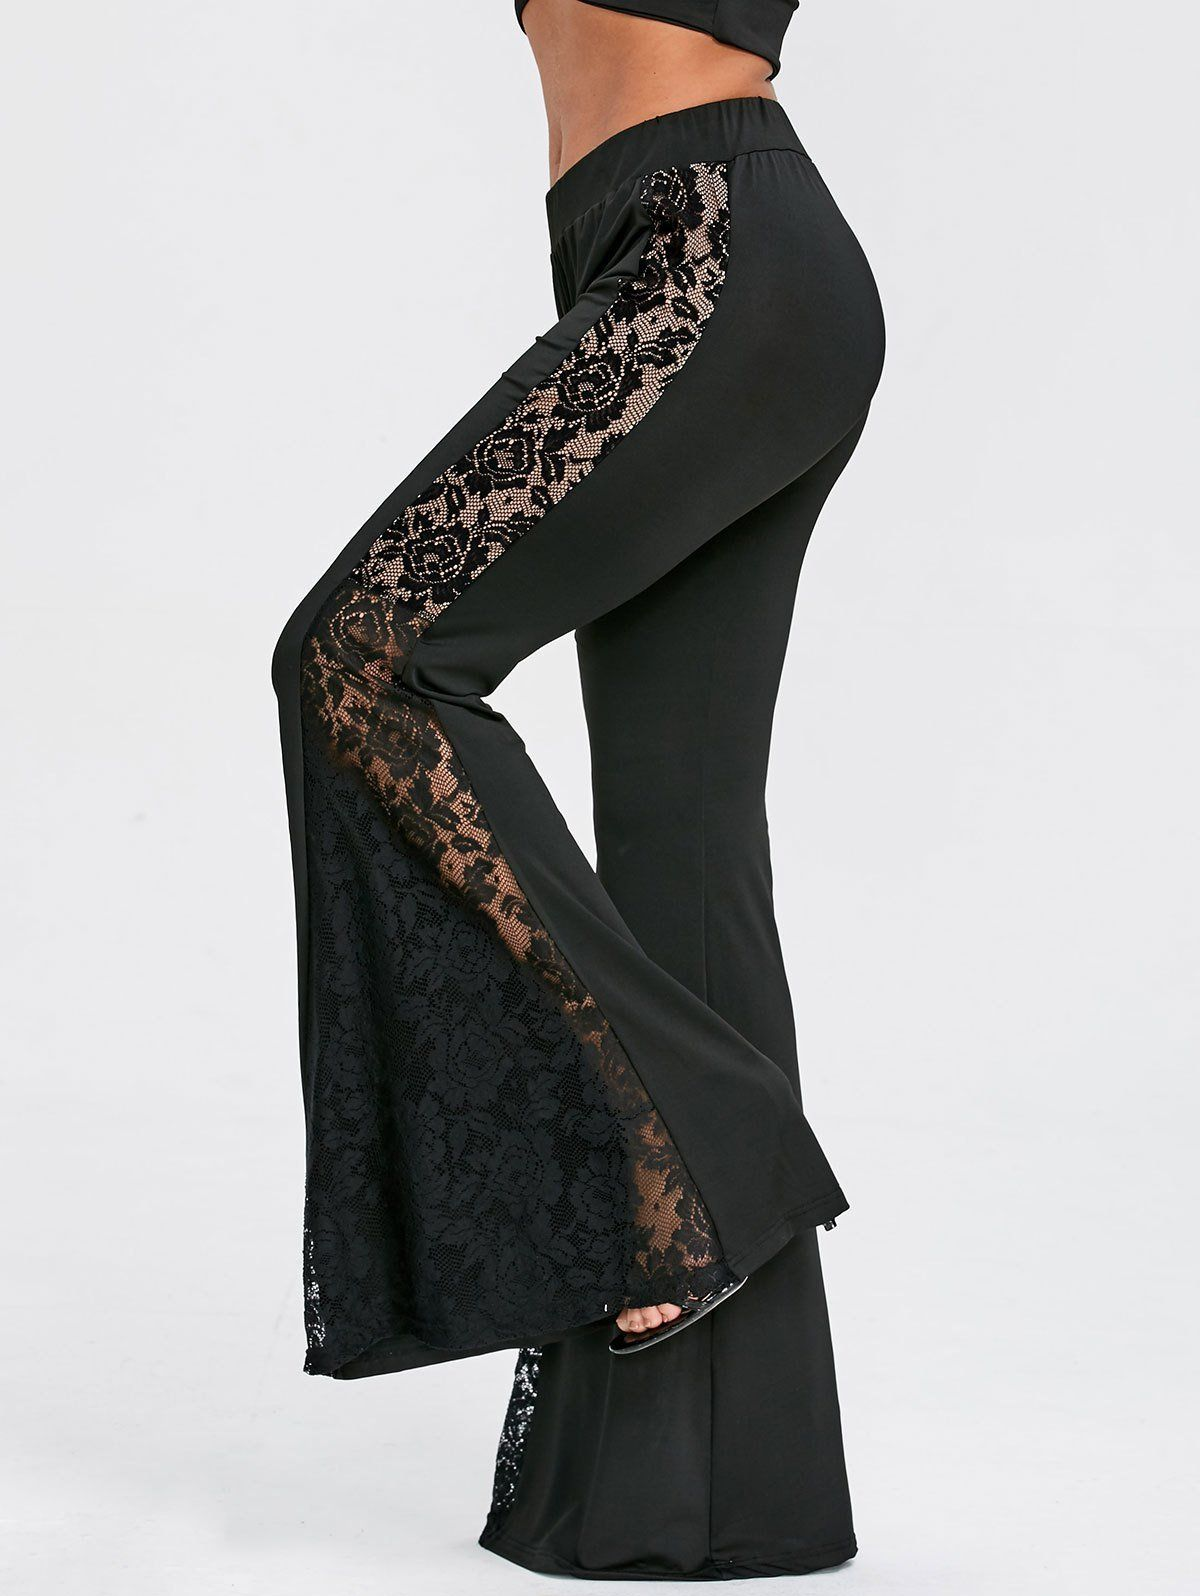 See Through Lace Panel High Waisted Flare Pants – Black – S